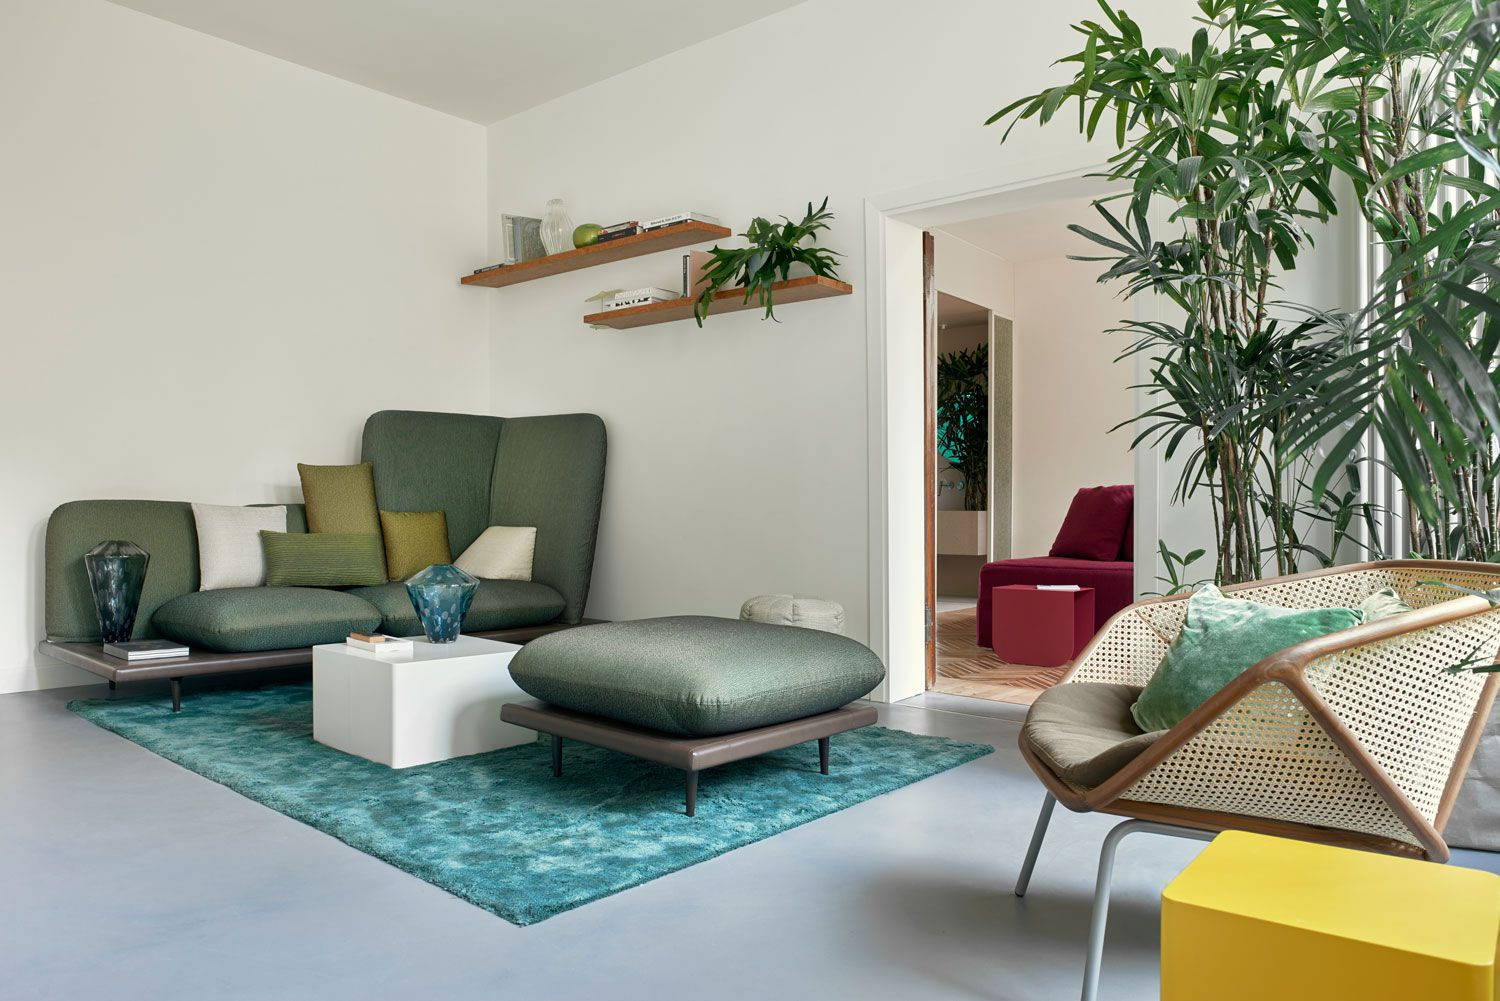 casa flora design apartment in venice challenges traditional